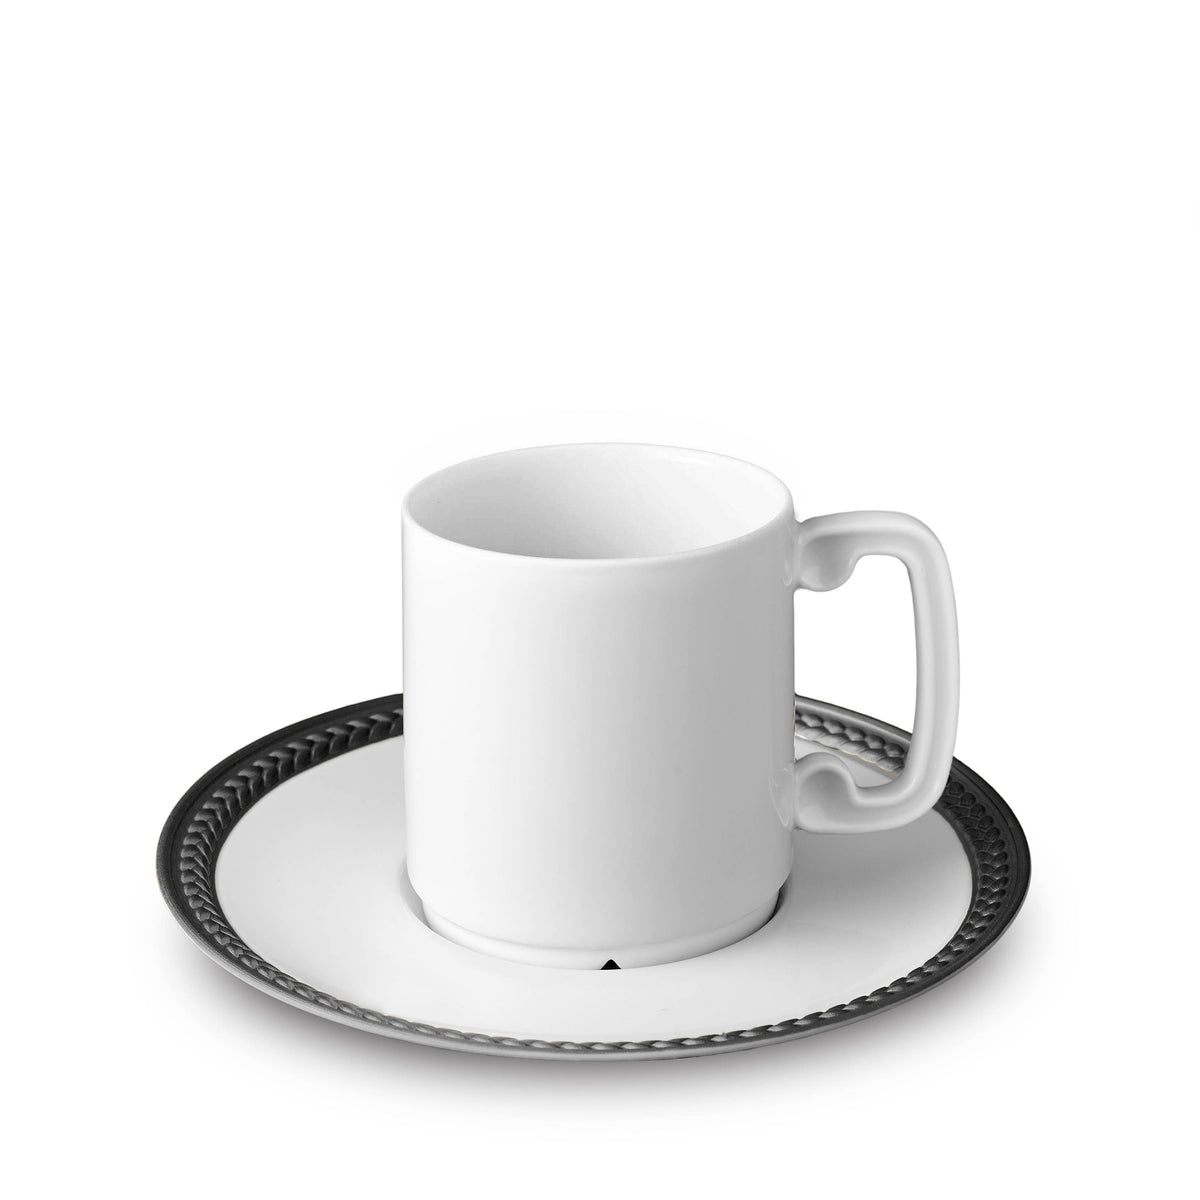 Soie Tressée Espresso Cup + Saucer (Set of 6) - Black